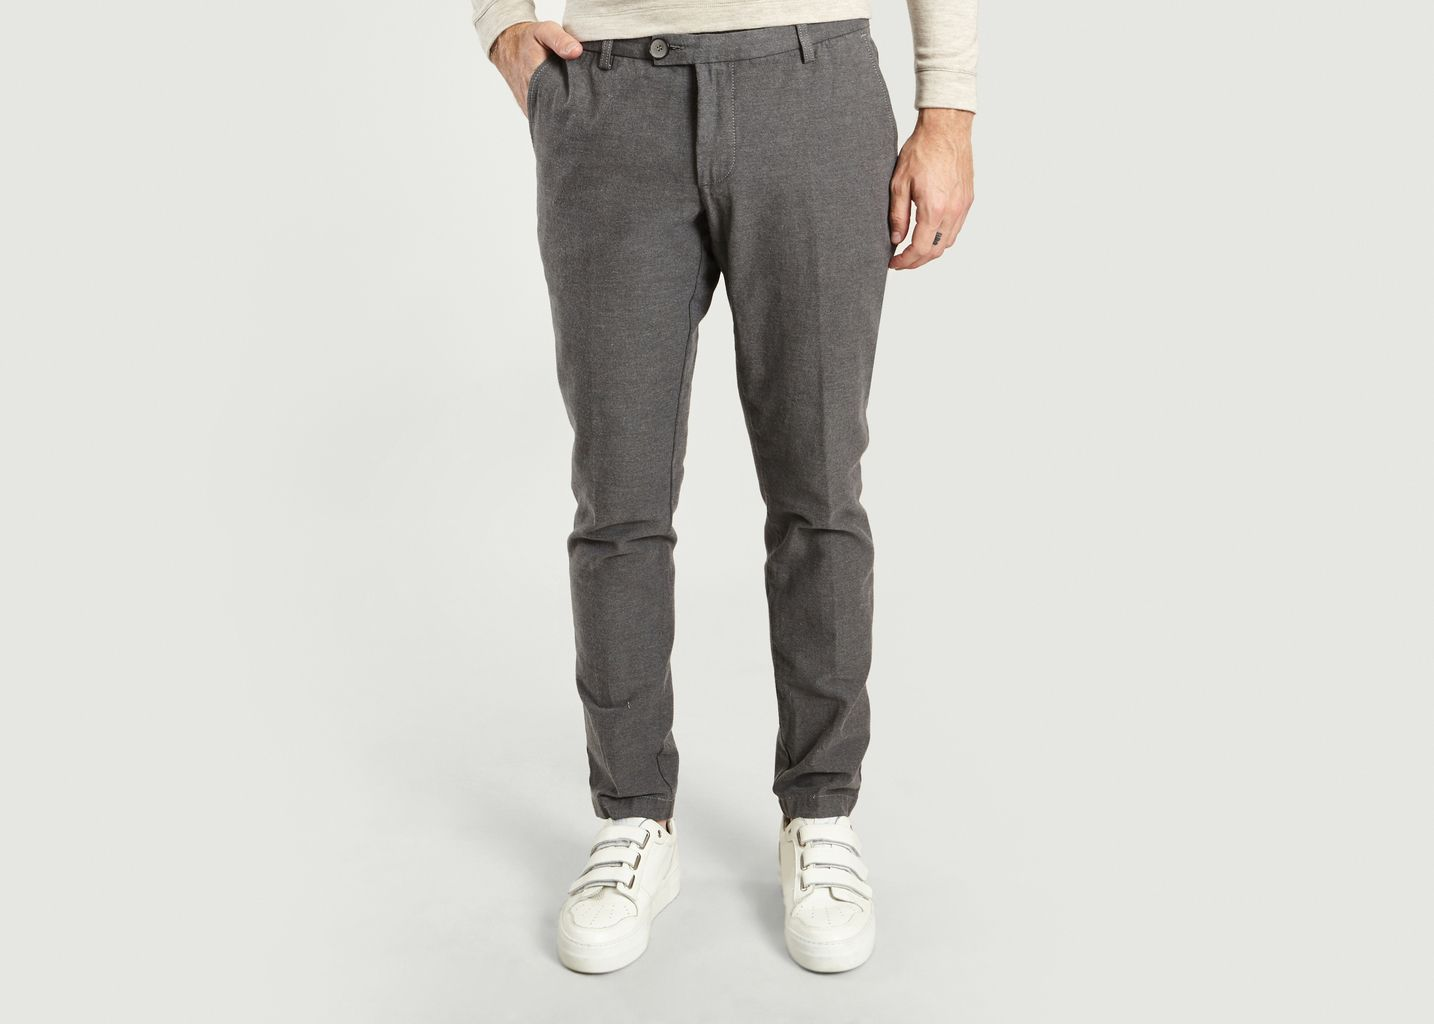 Pantalon City 2 - JagVi